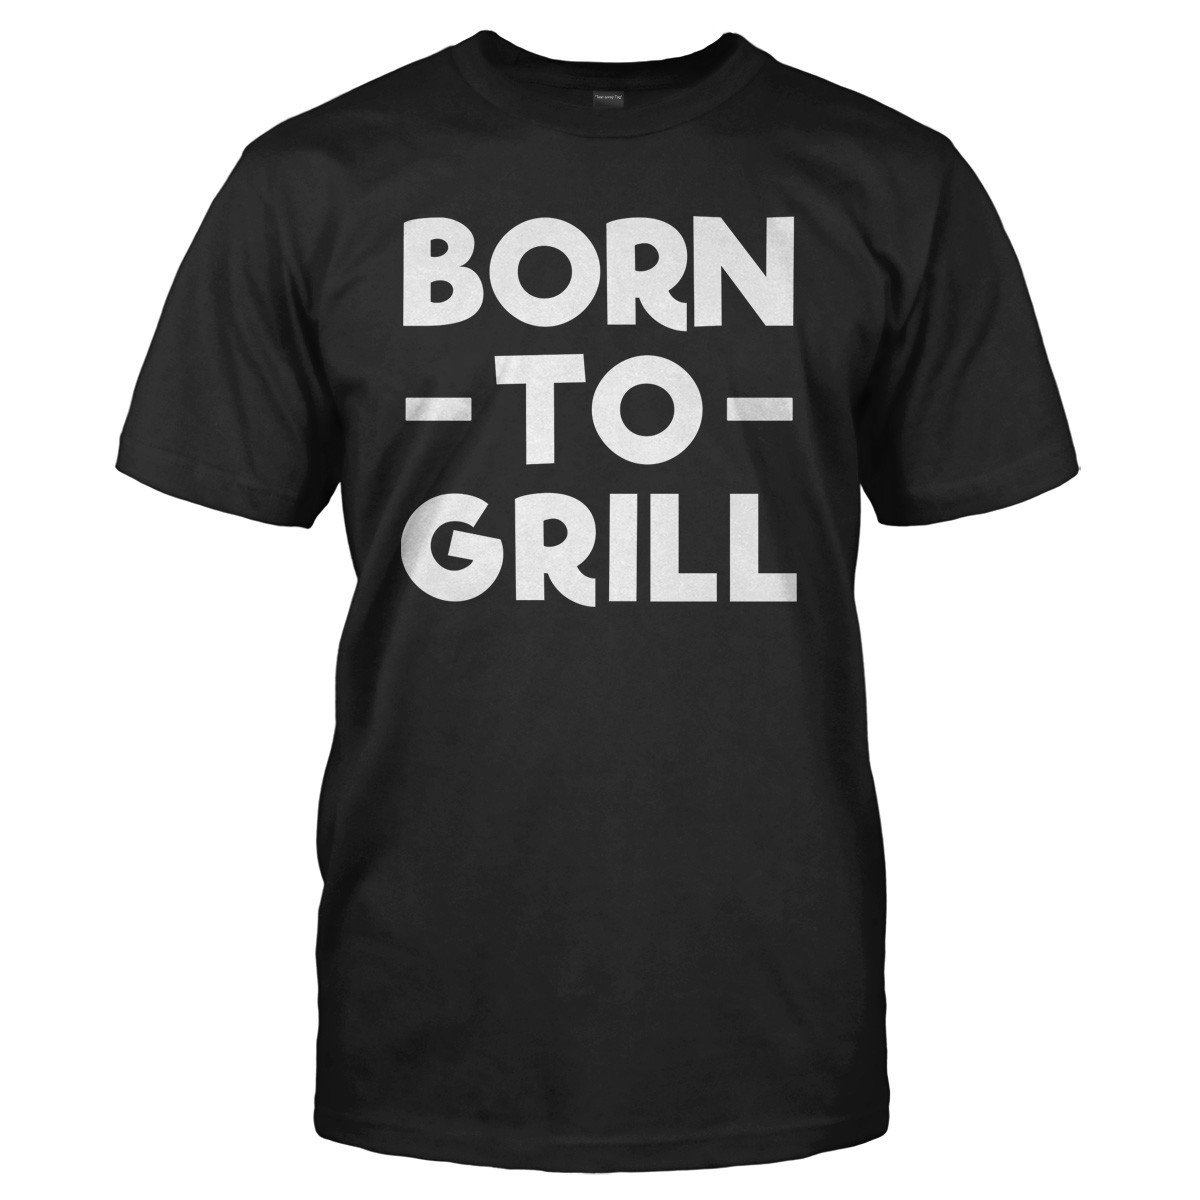 Born To Grill - T Shirt